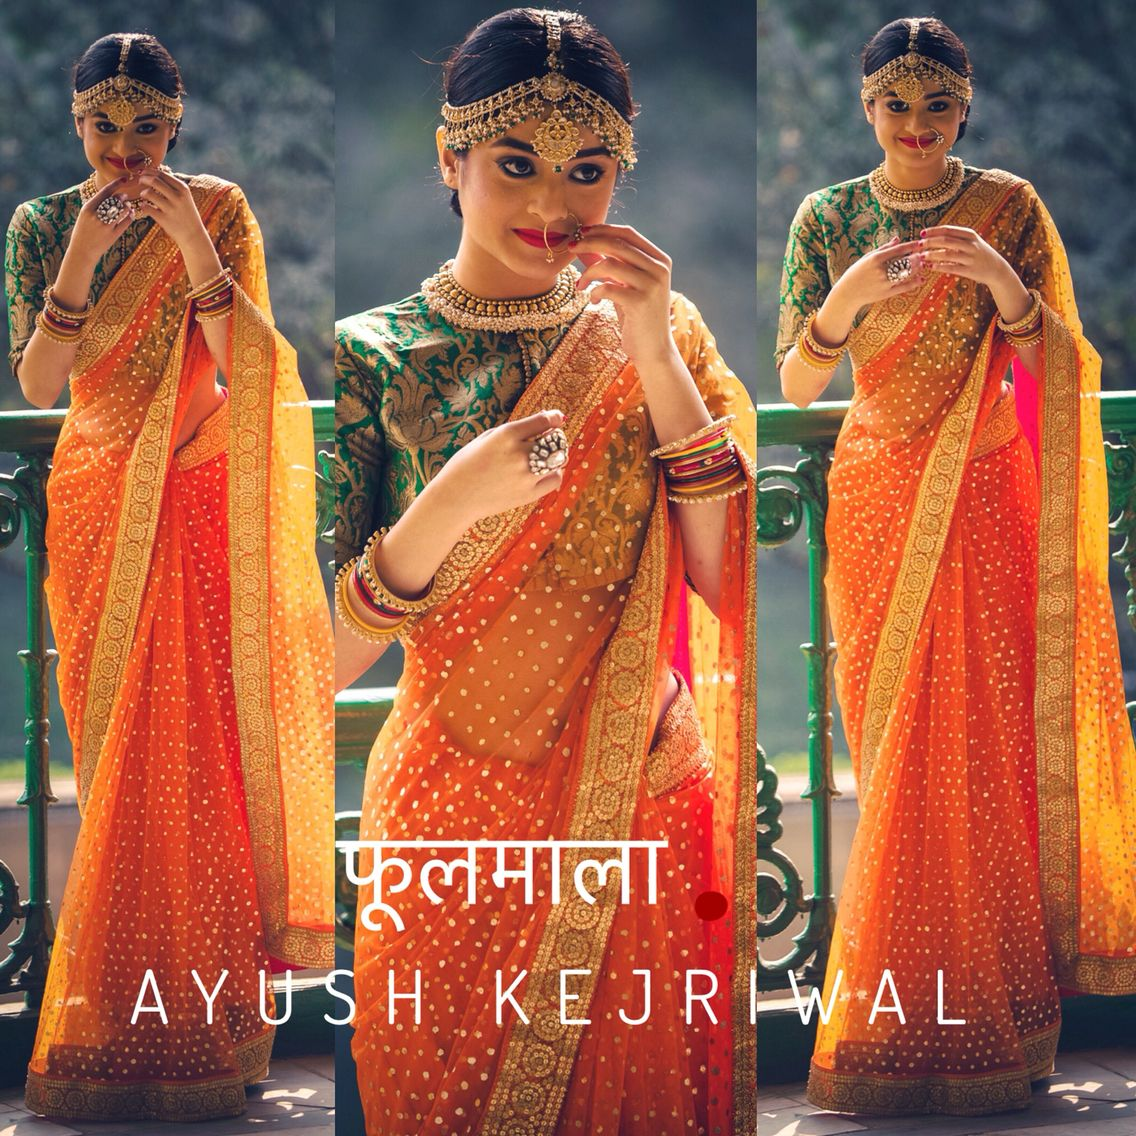 cfde30c6e9d Saree by Ayush Kejriwal For purchases email me at  designerayushkejriwal hotmail.com or what s app me on 00447840384707 We  ship WORLDWIDE.